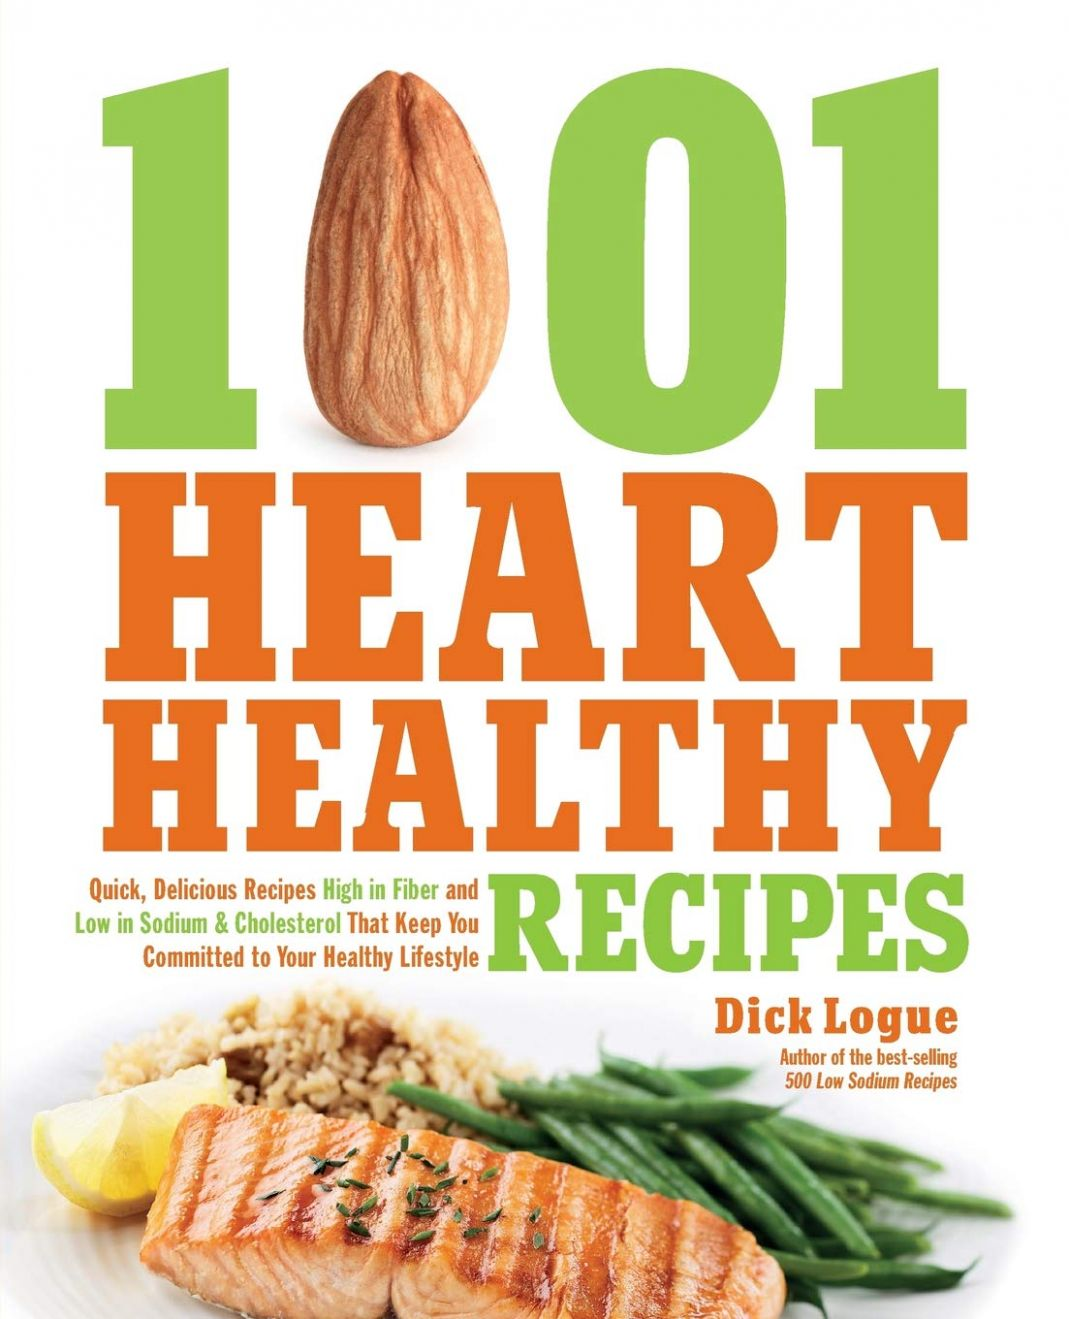 11, 111 Heart Healthy Recipes: Quick, Delicious Recipes High in ..